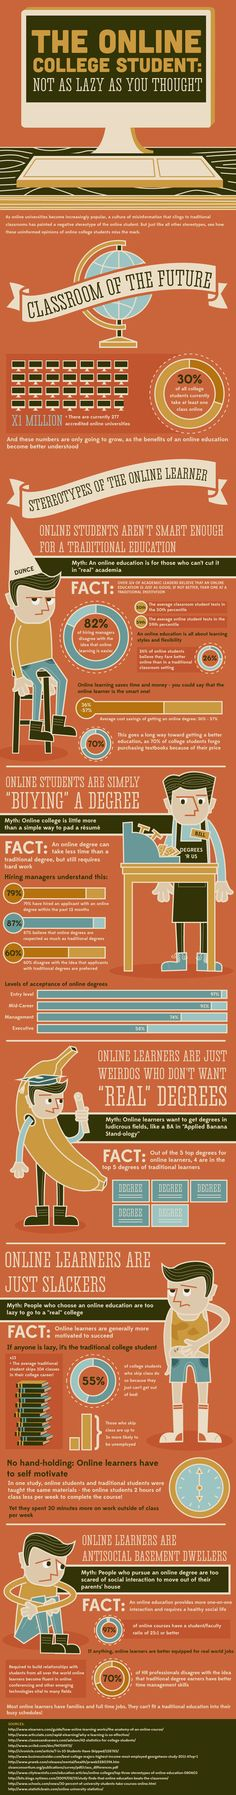 CollegesOnlineInfographic2015